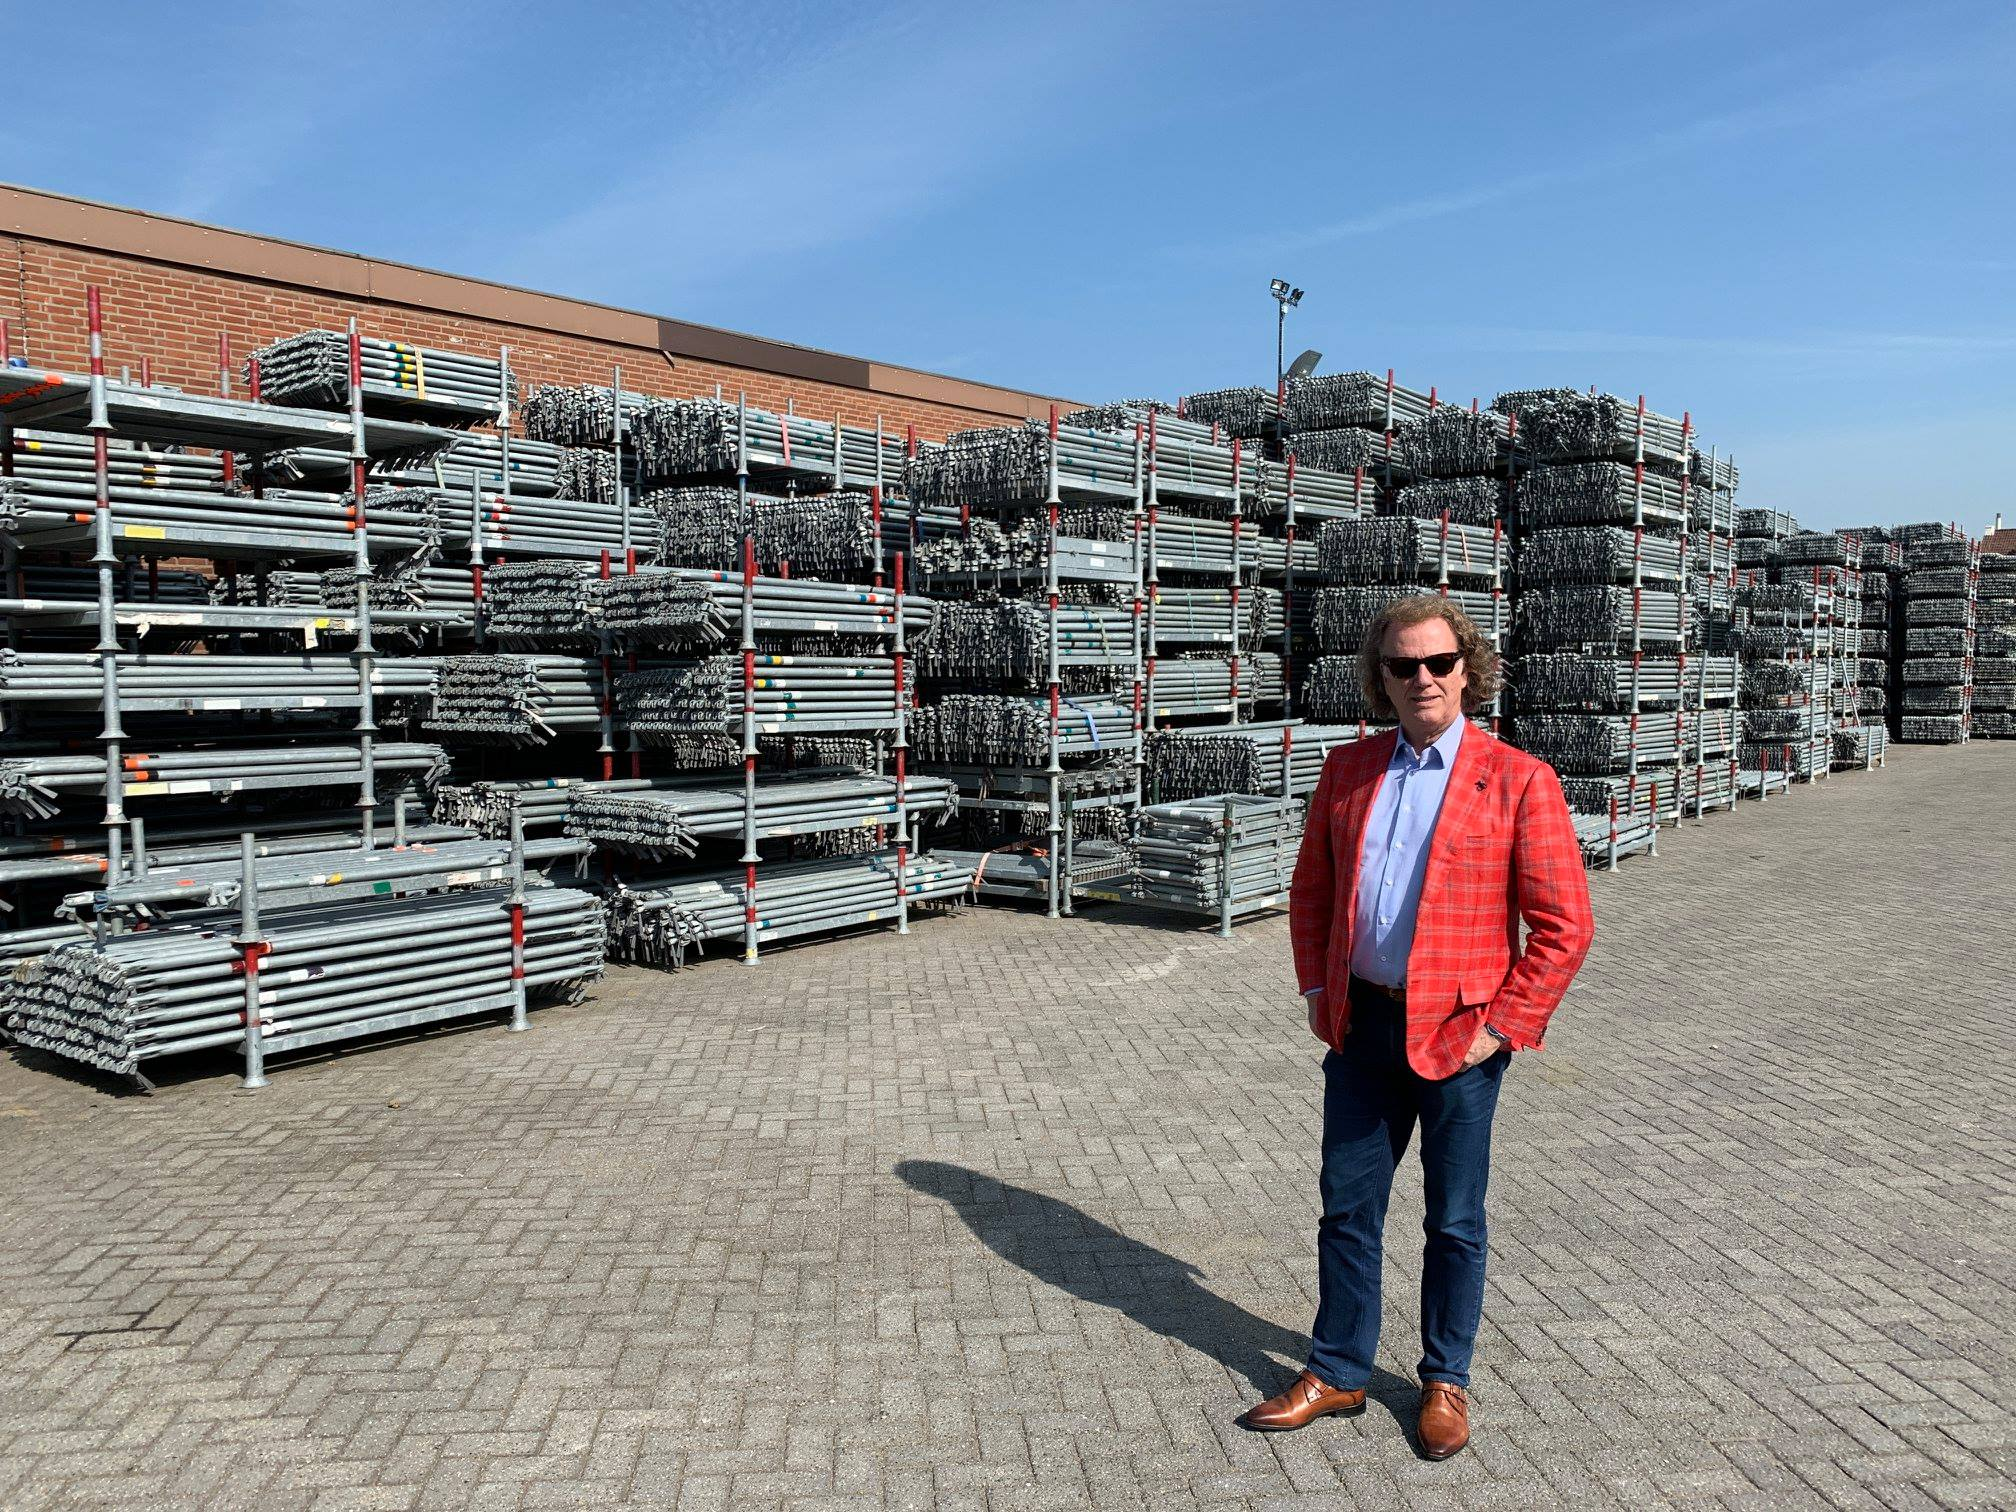 Just in: Andre Rieu loses it as Dutch drop Covid rules